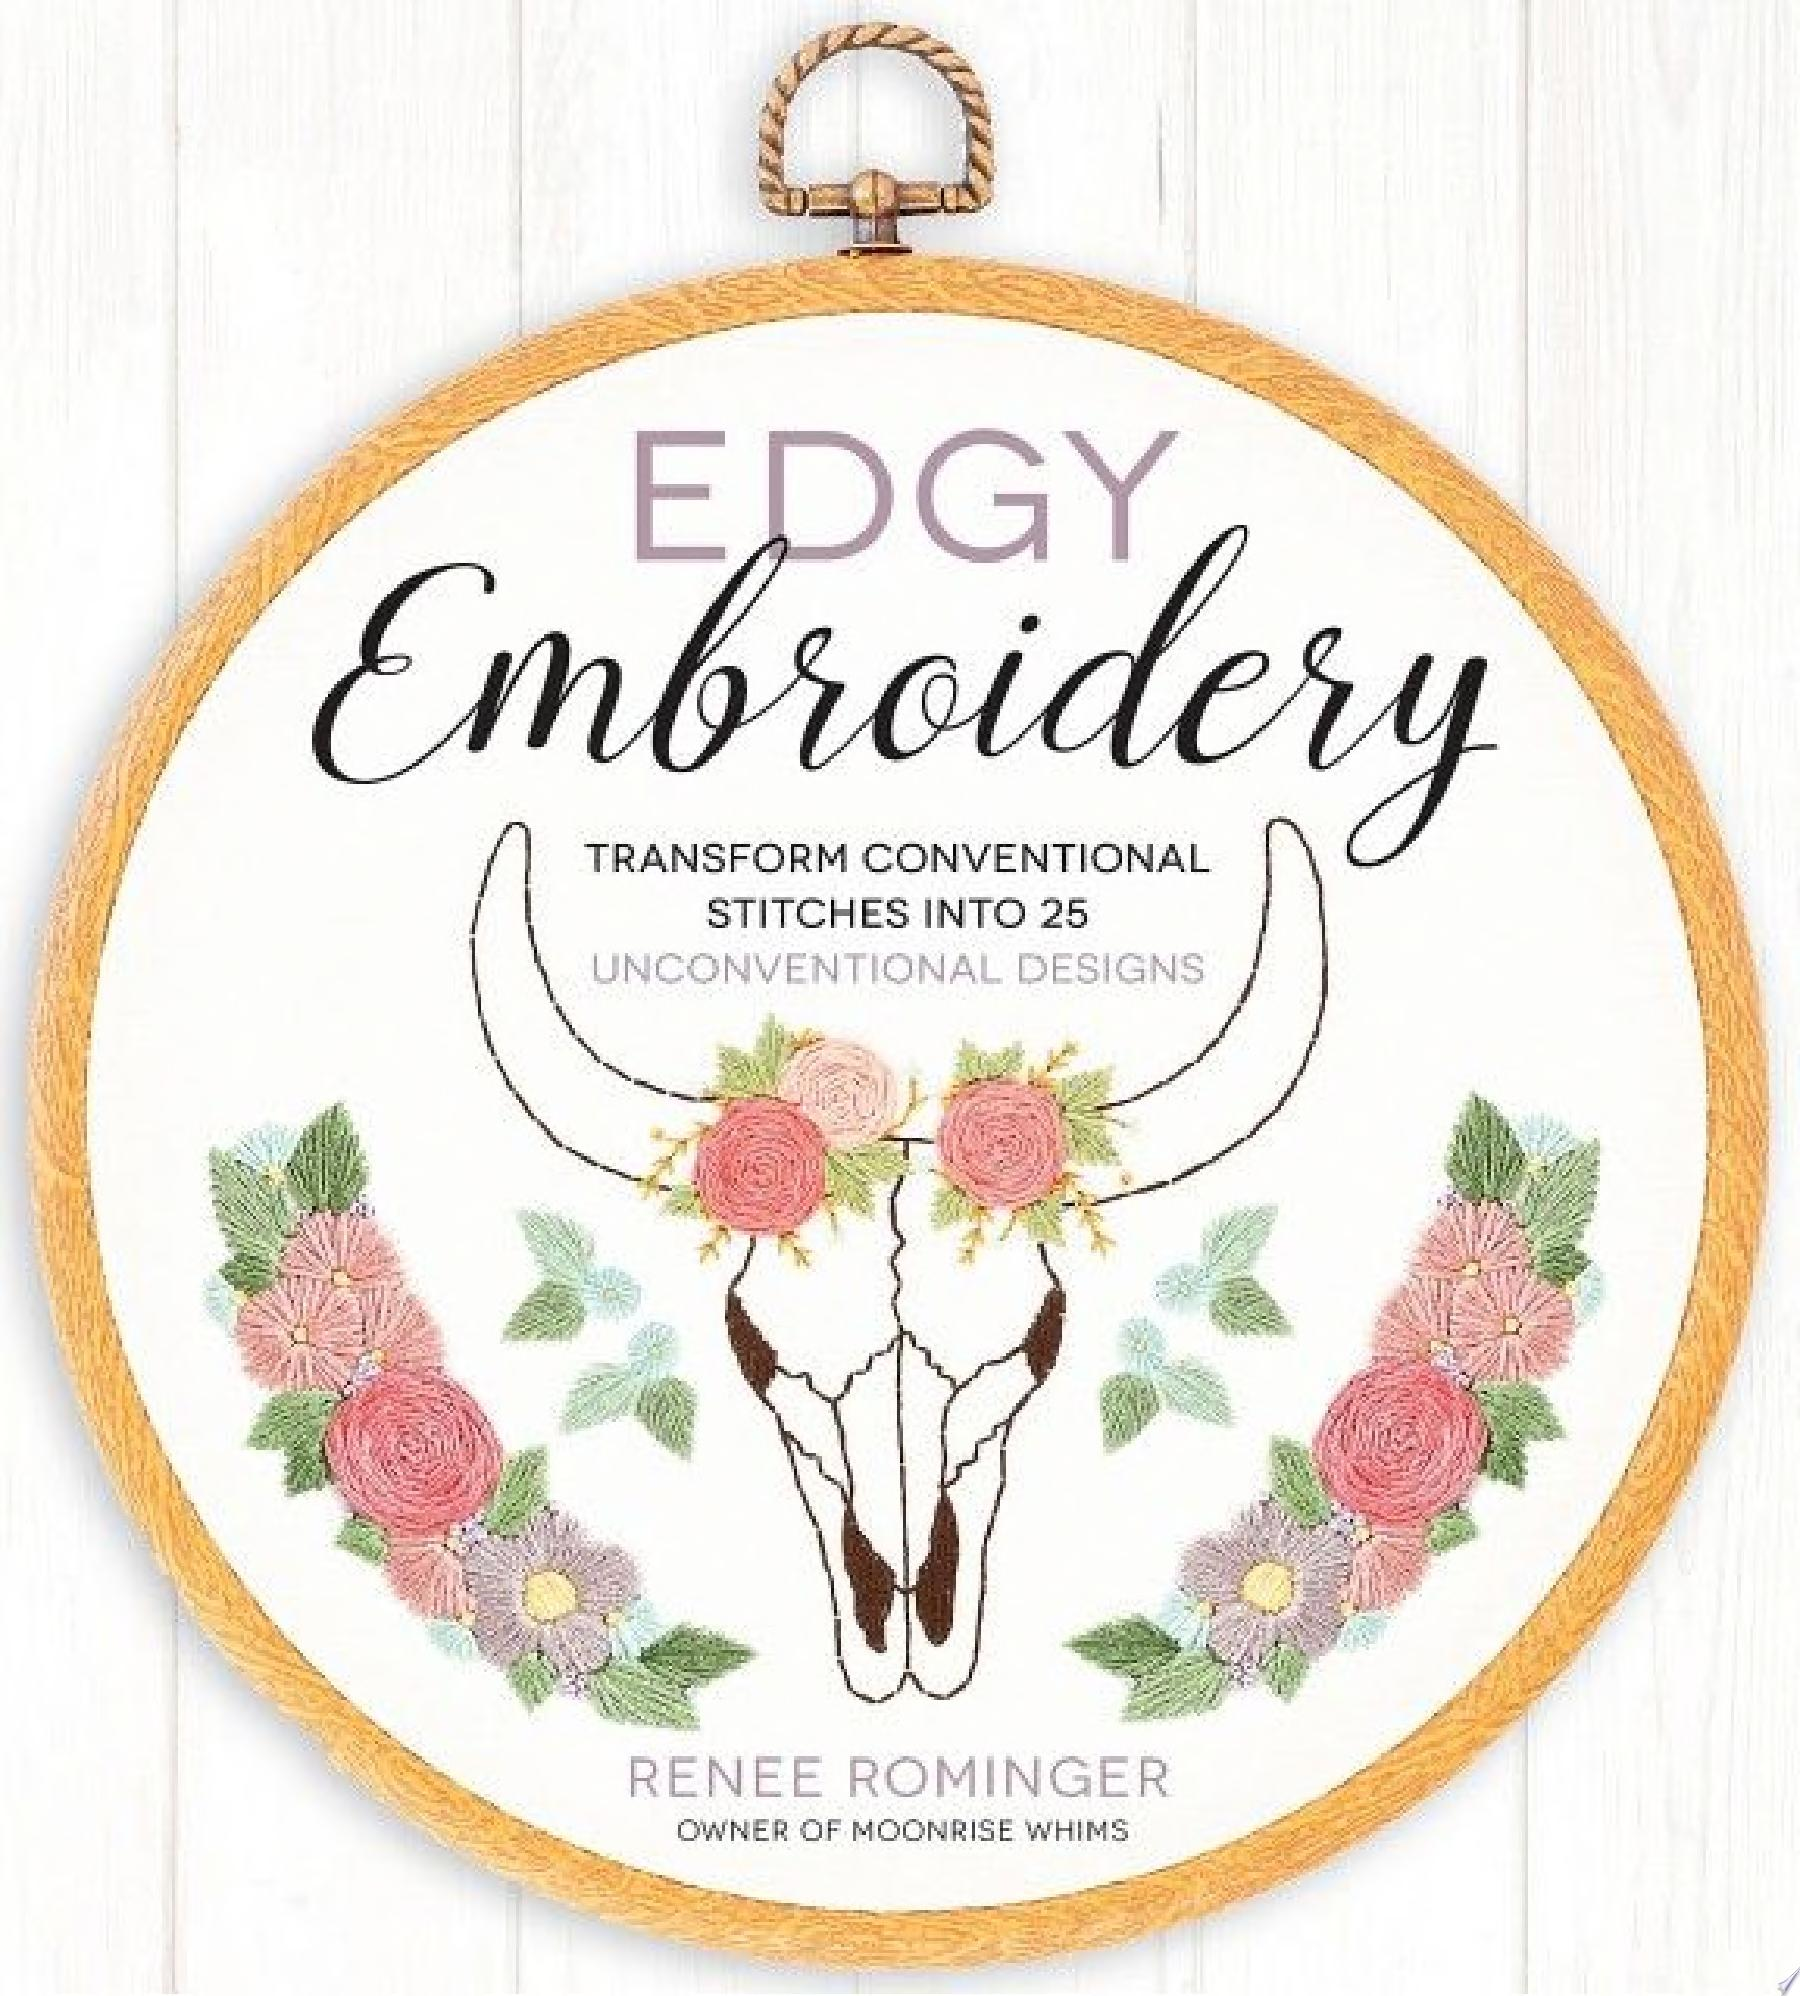 Edgy Embroidery